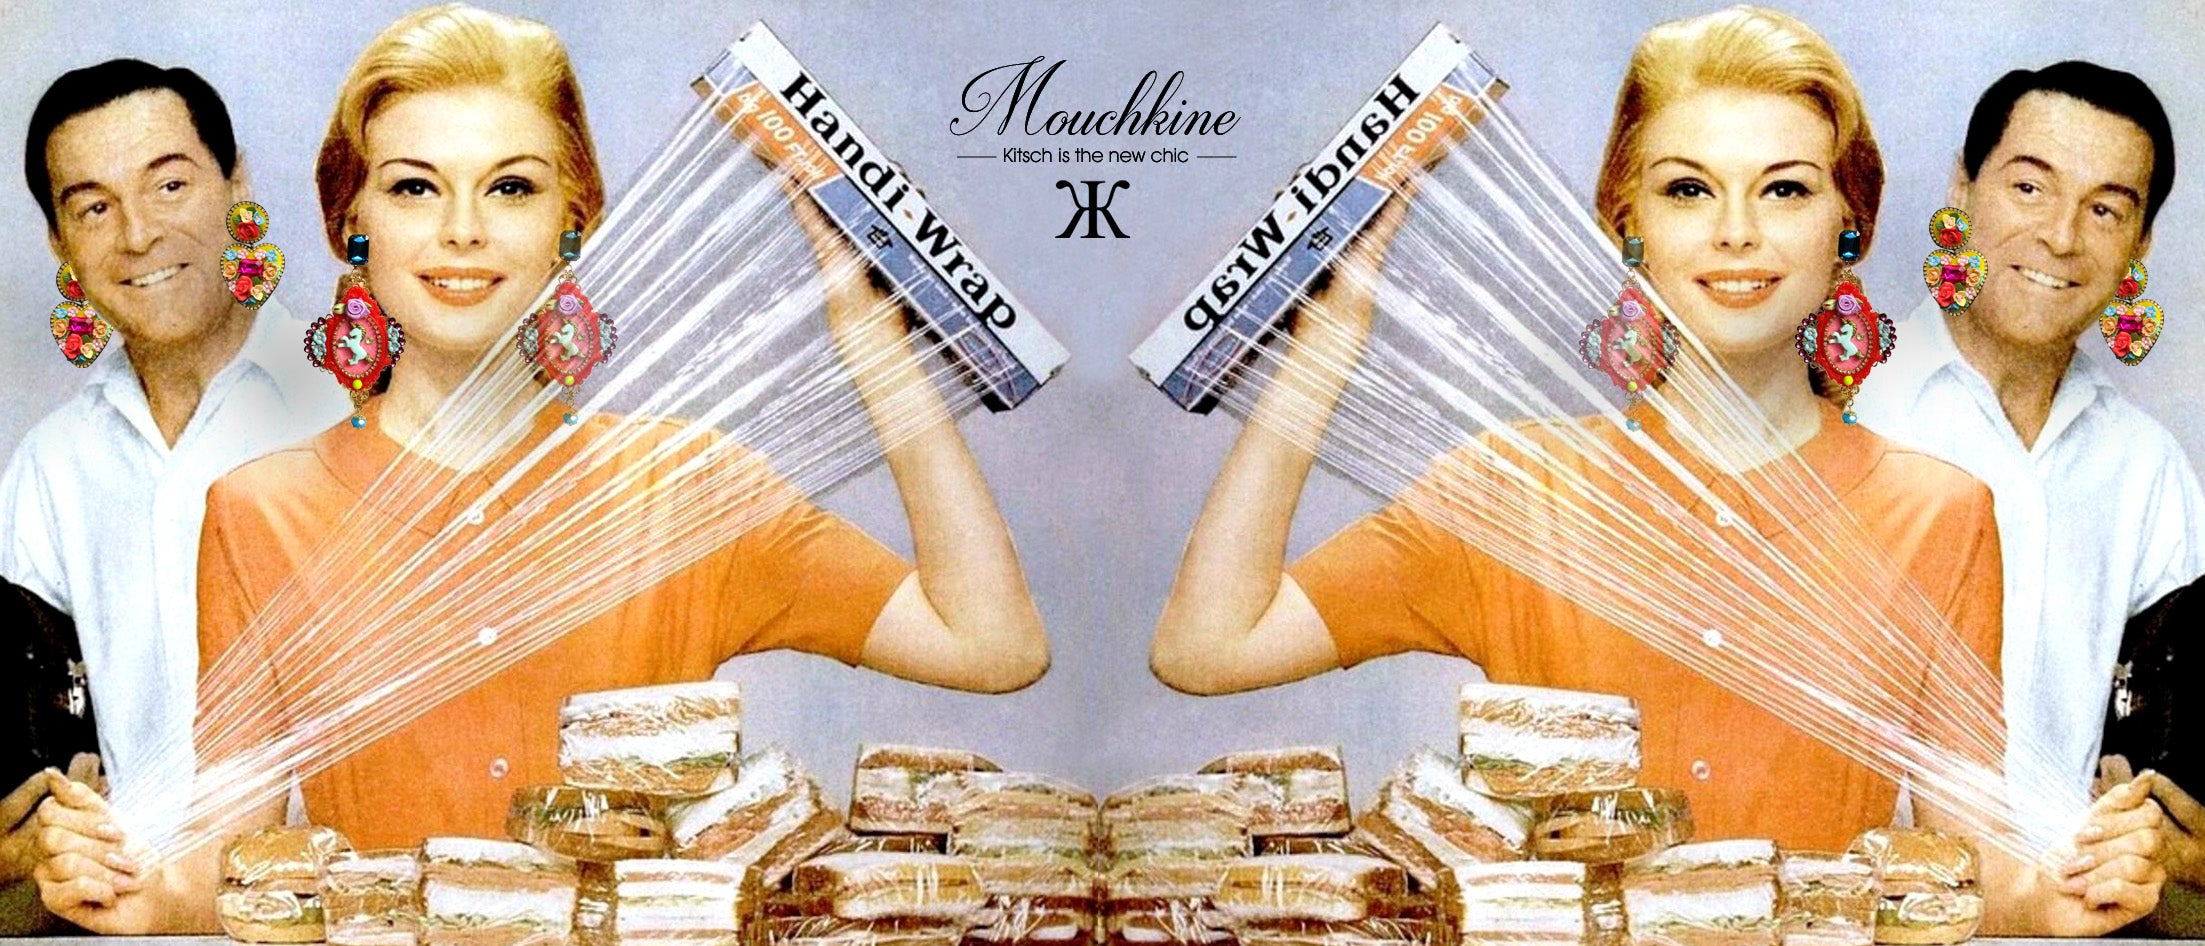 mouchkine jewelry art of kitsch and chic jewels for a unique sophisticated and classy fashion style.